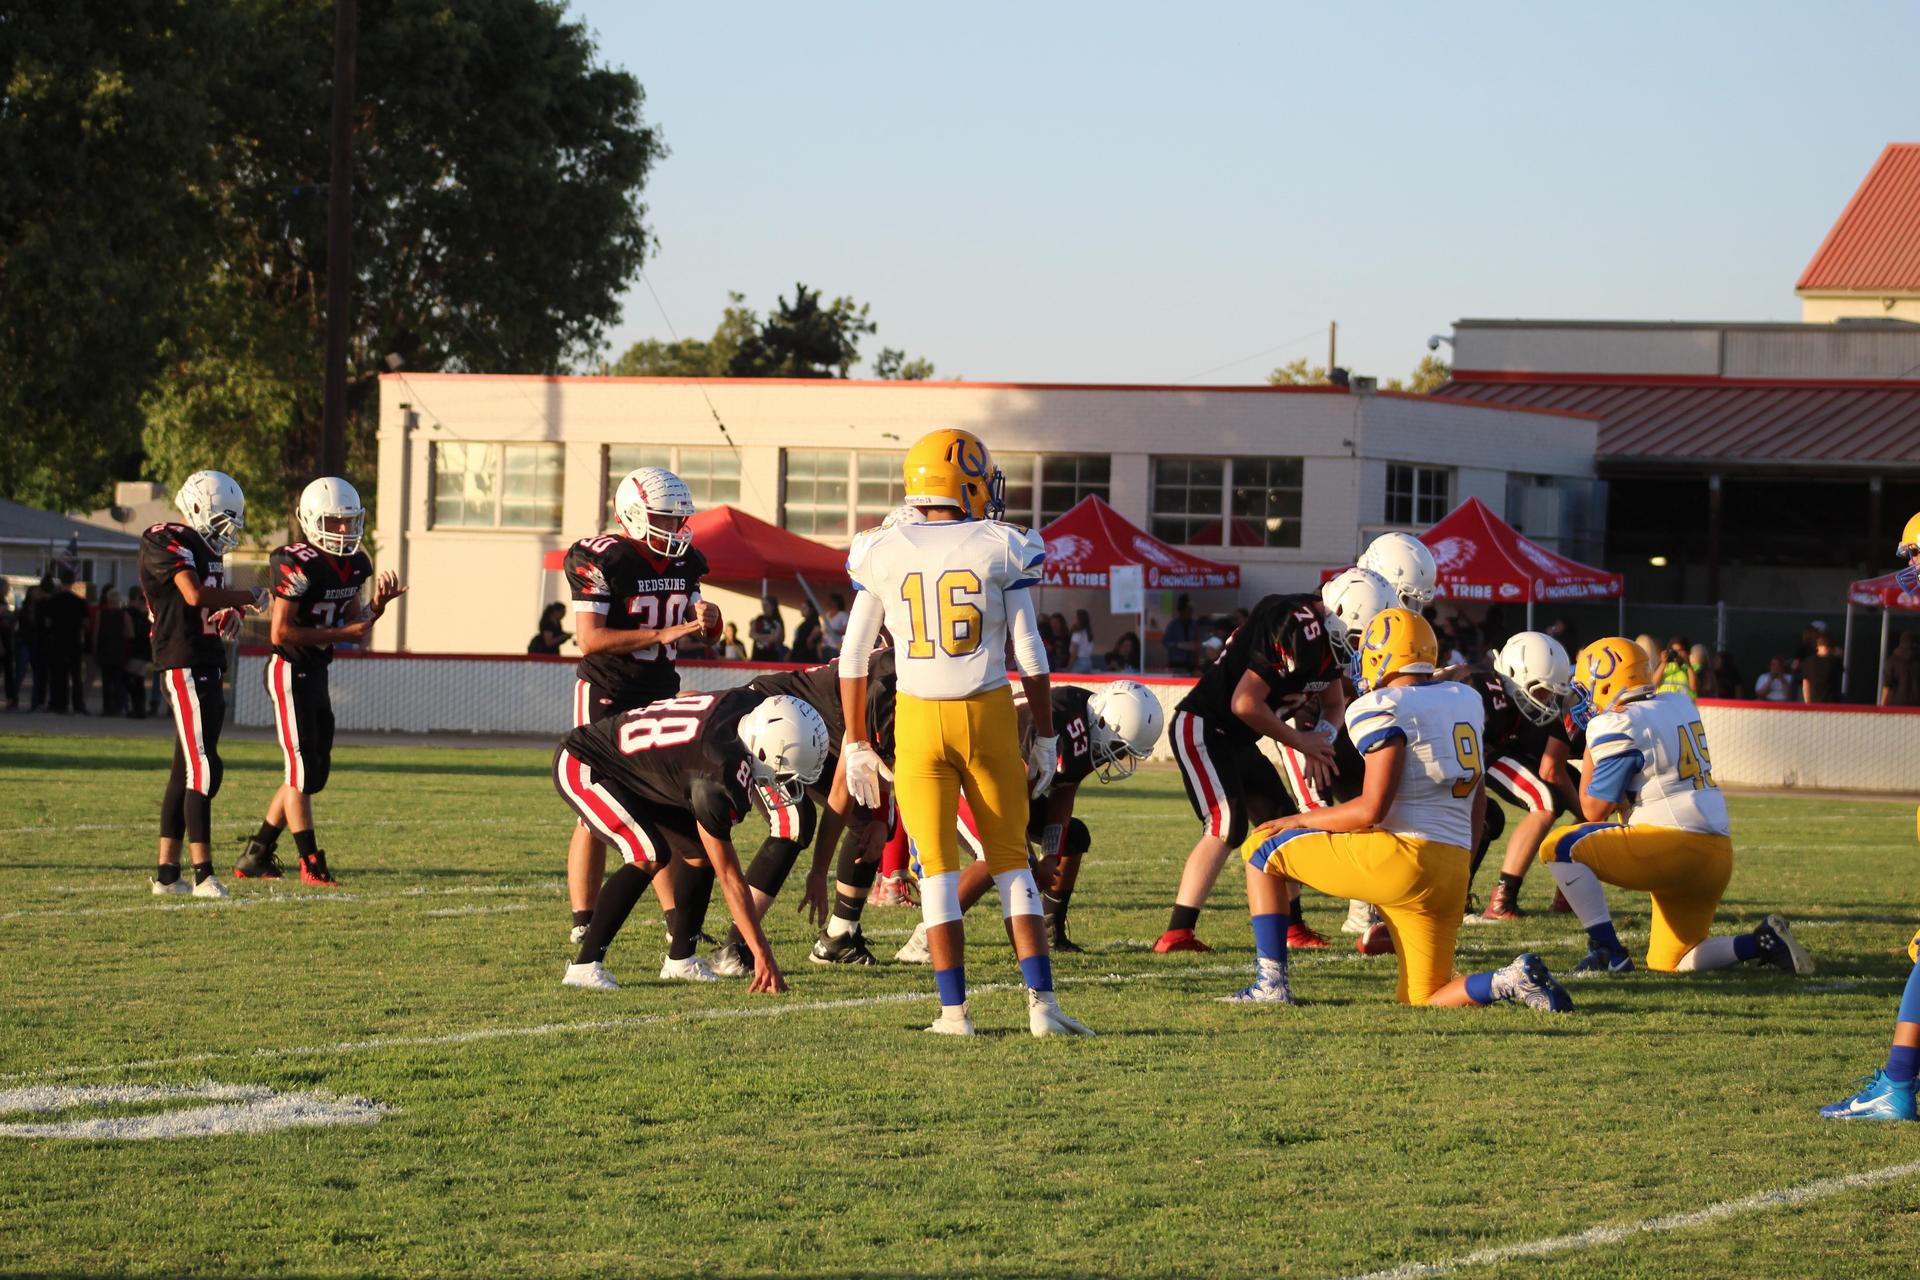 JV football players in action vs Dos Palos